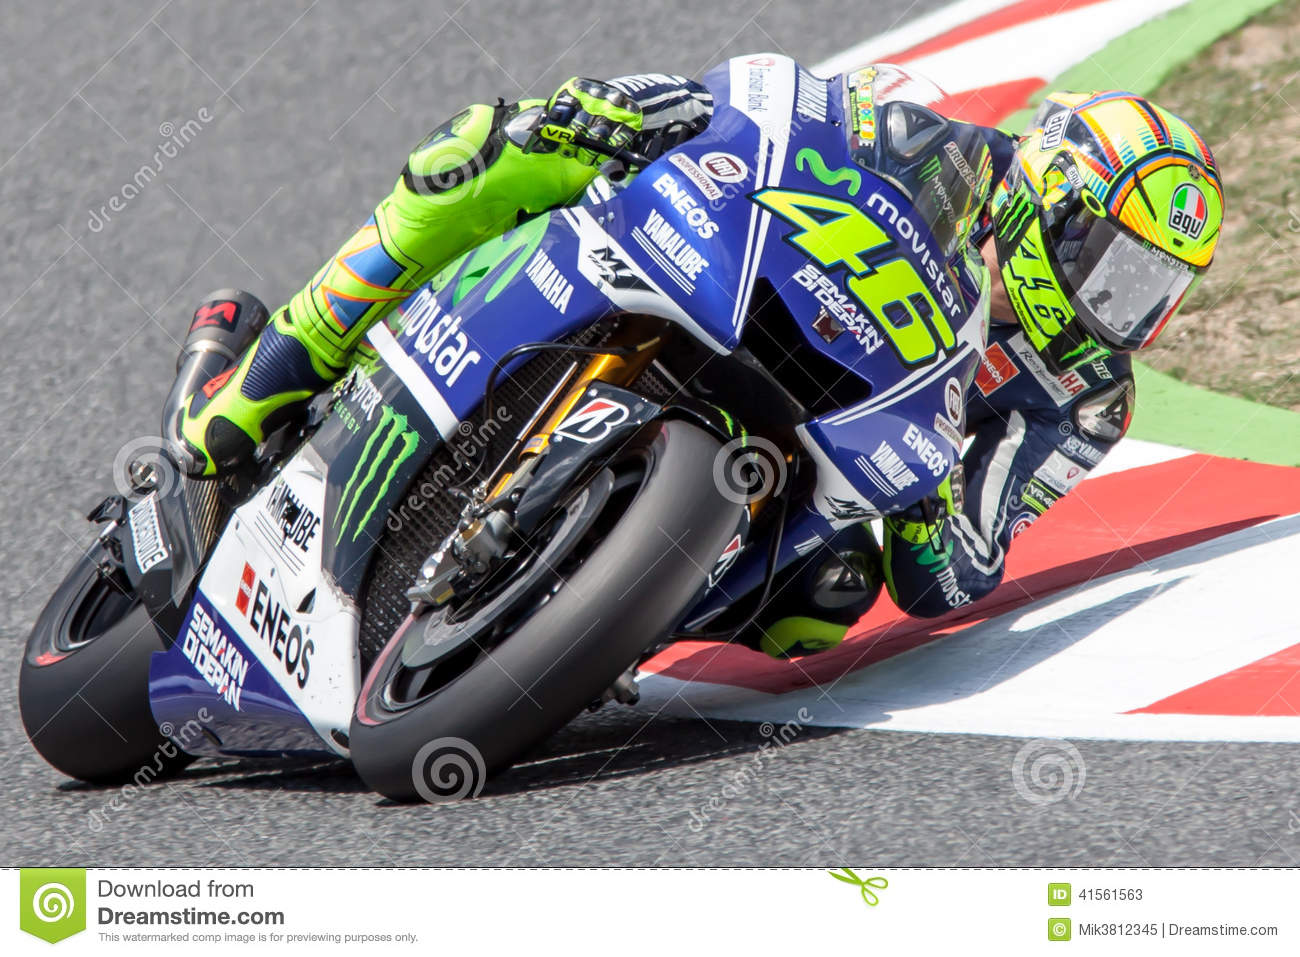 valentino rosi monster energy grand prix of catalunya motogp editorial stock photo image. Black Bedroom Furniture Sets. Home Design Ideas